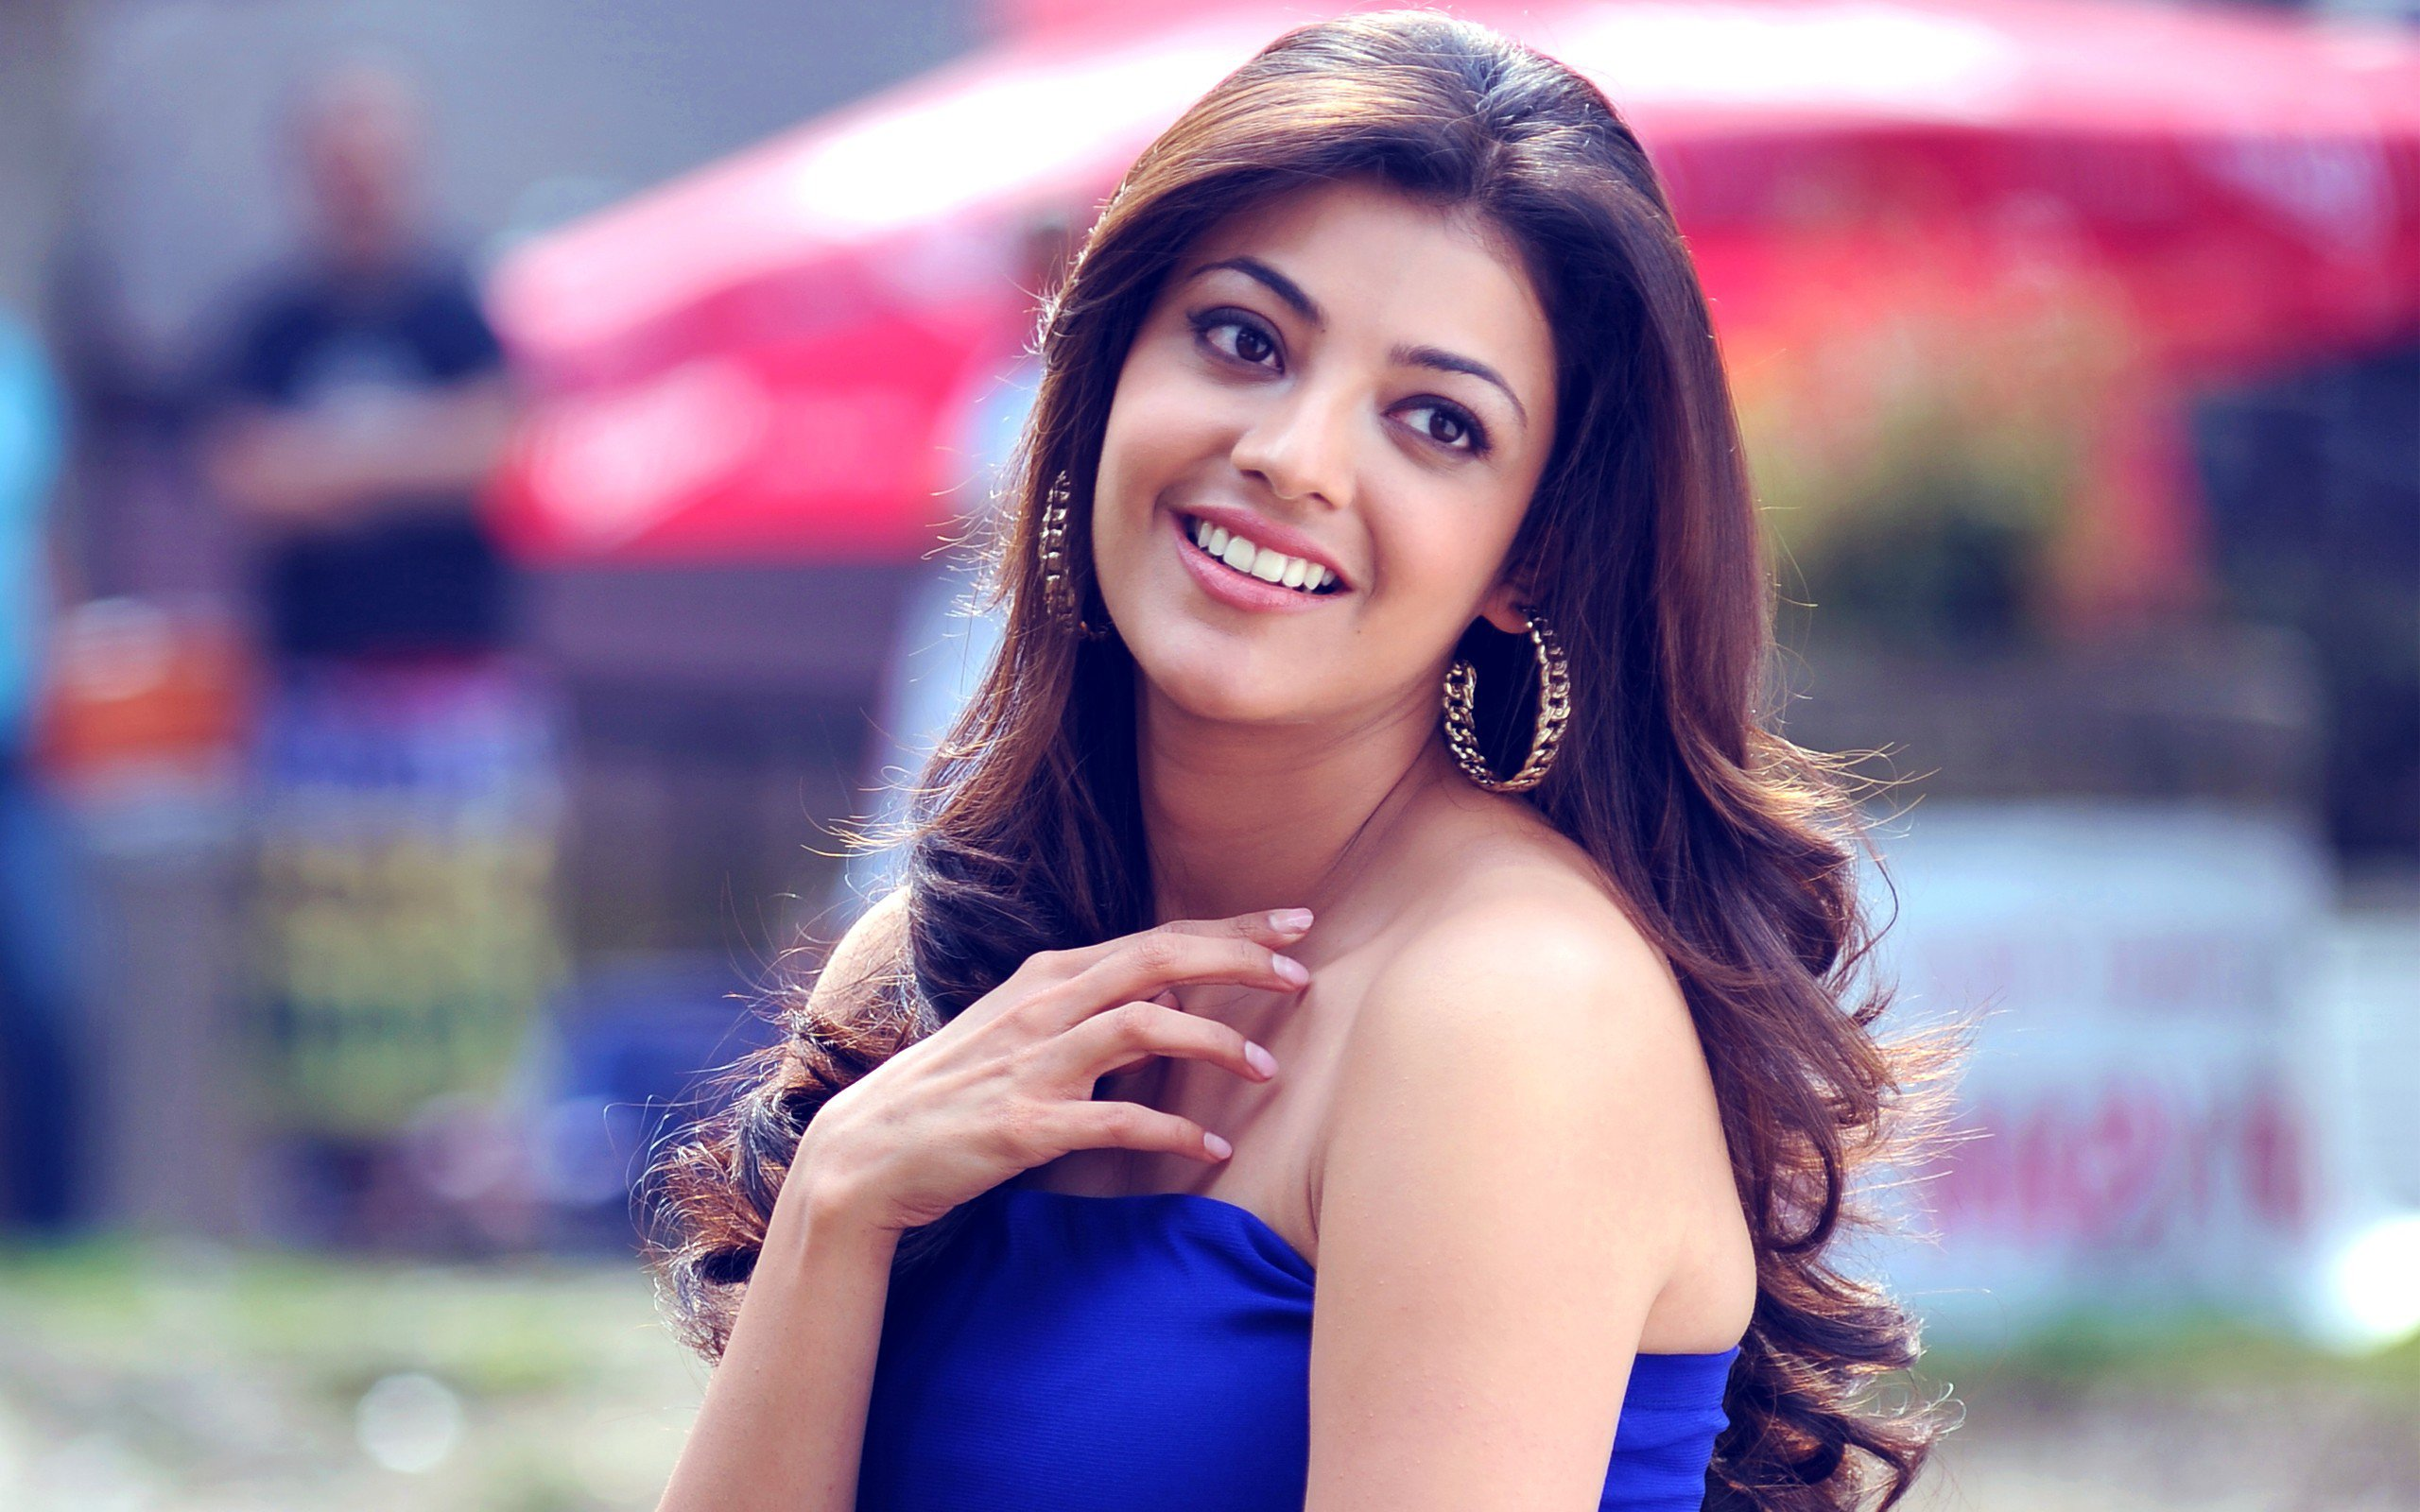 Wallpaper download kajal agarwal - 2016 Kajal Agarwal 1366x768 Resolution